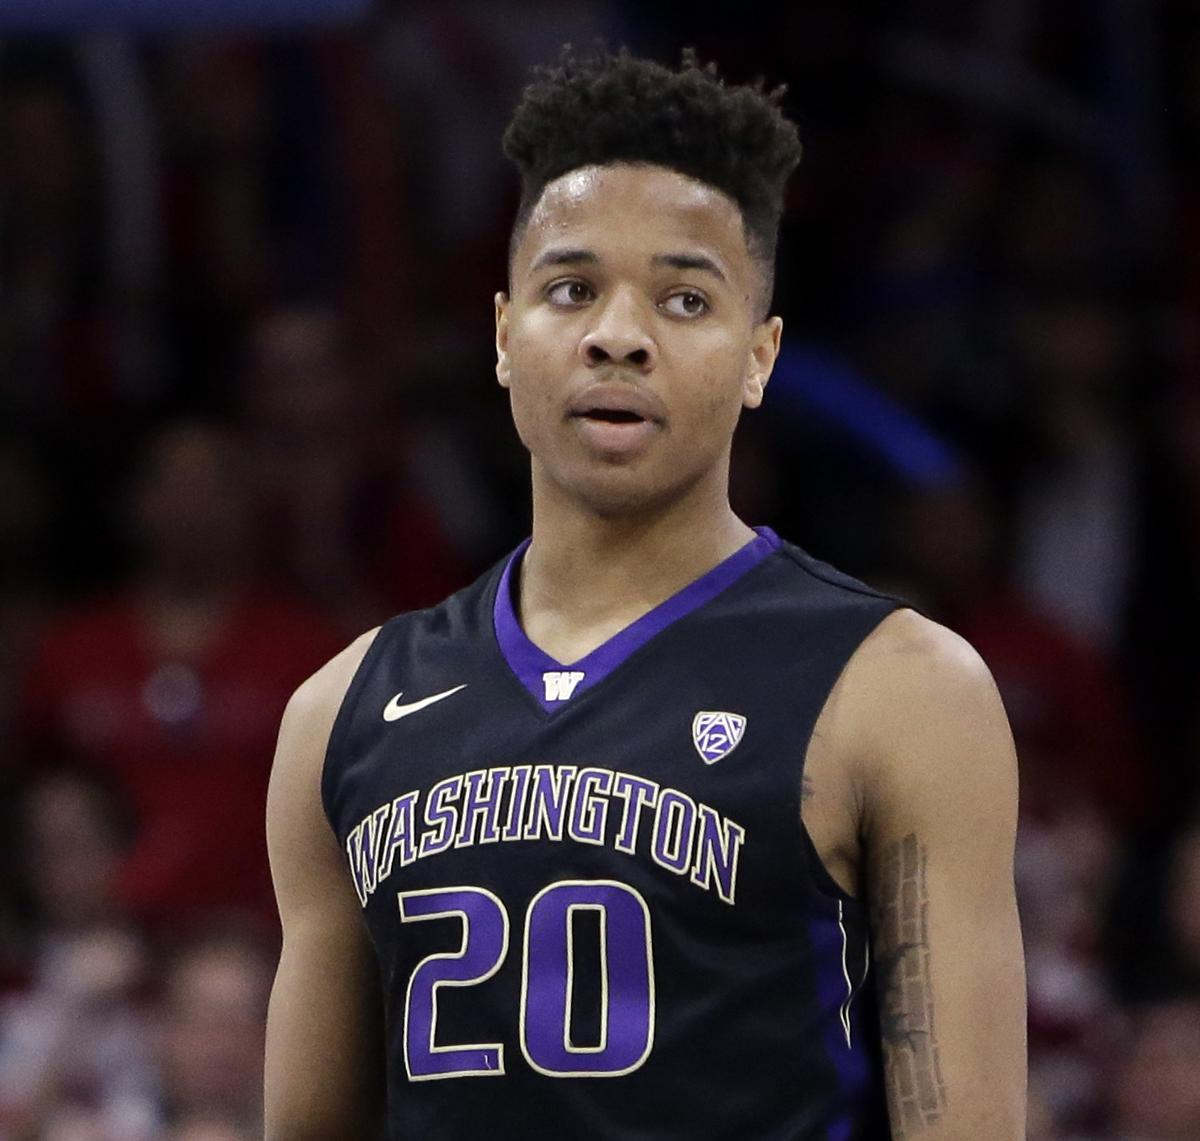 76ers select Washington guard Markelle Fultz No. 1 overall in NBA Draft  https://t.co/Yz6sNGcMgZ